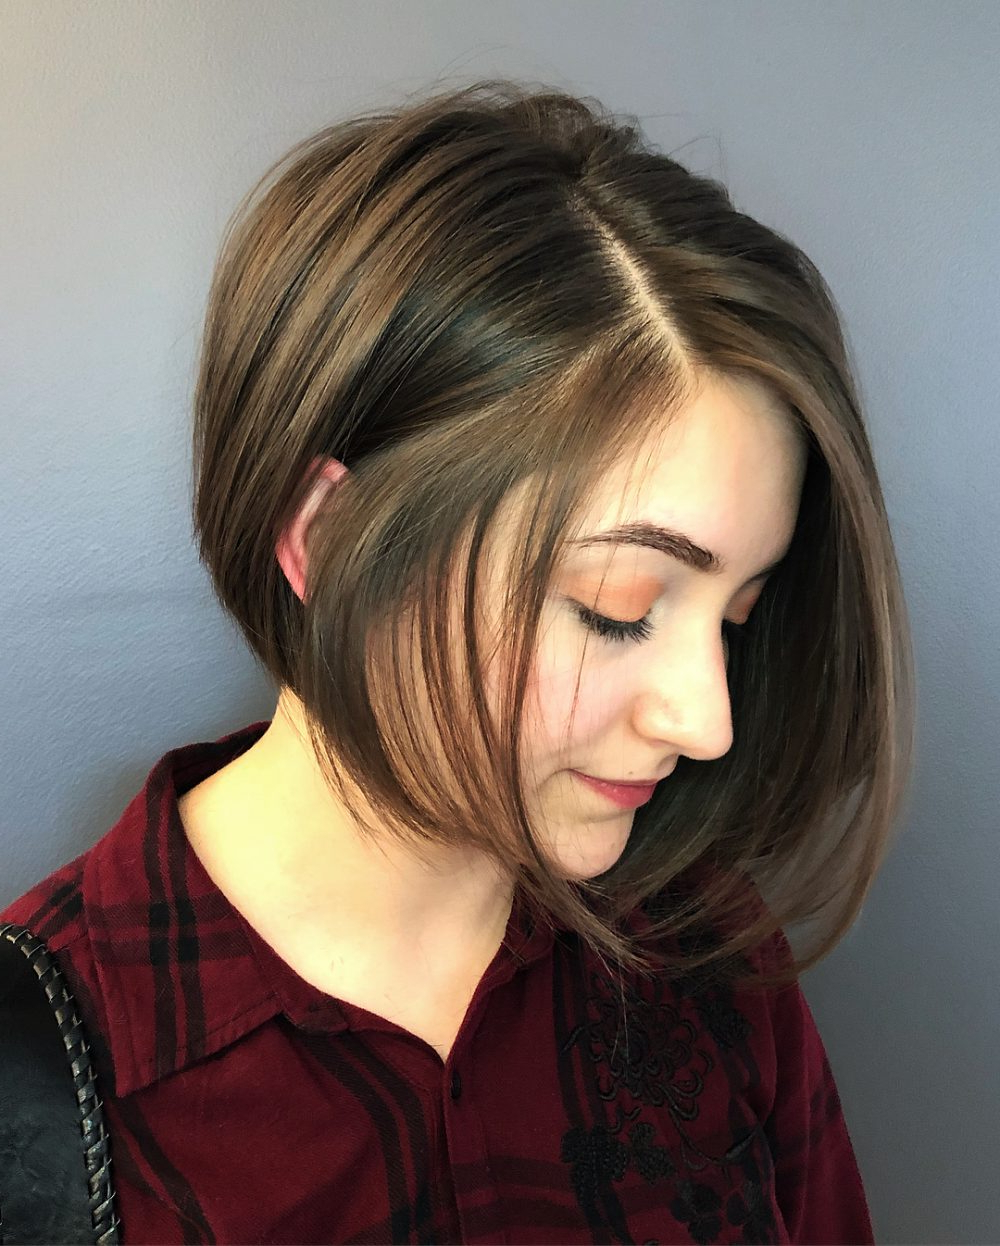 33 Flattering Short Hairstyles For Round Faces In 2018 Pertaining To Wavy Short Hairstyles For Round Faces (View 3 of 25)